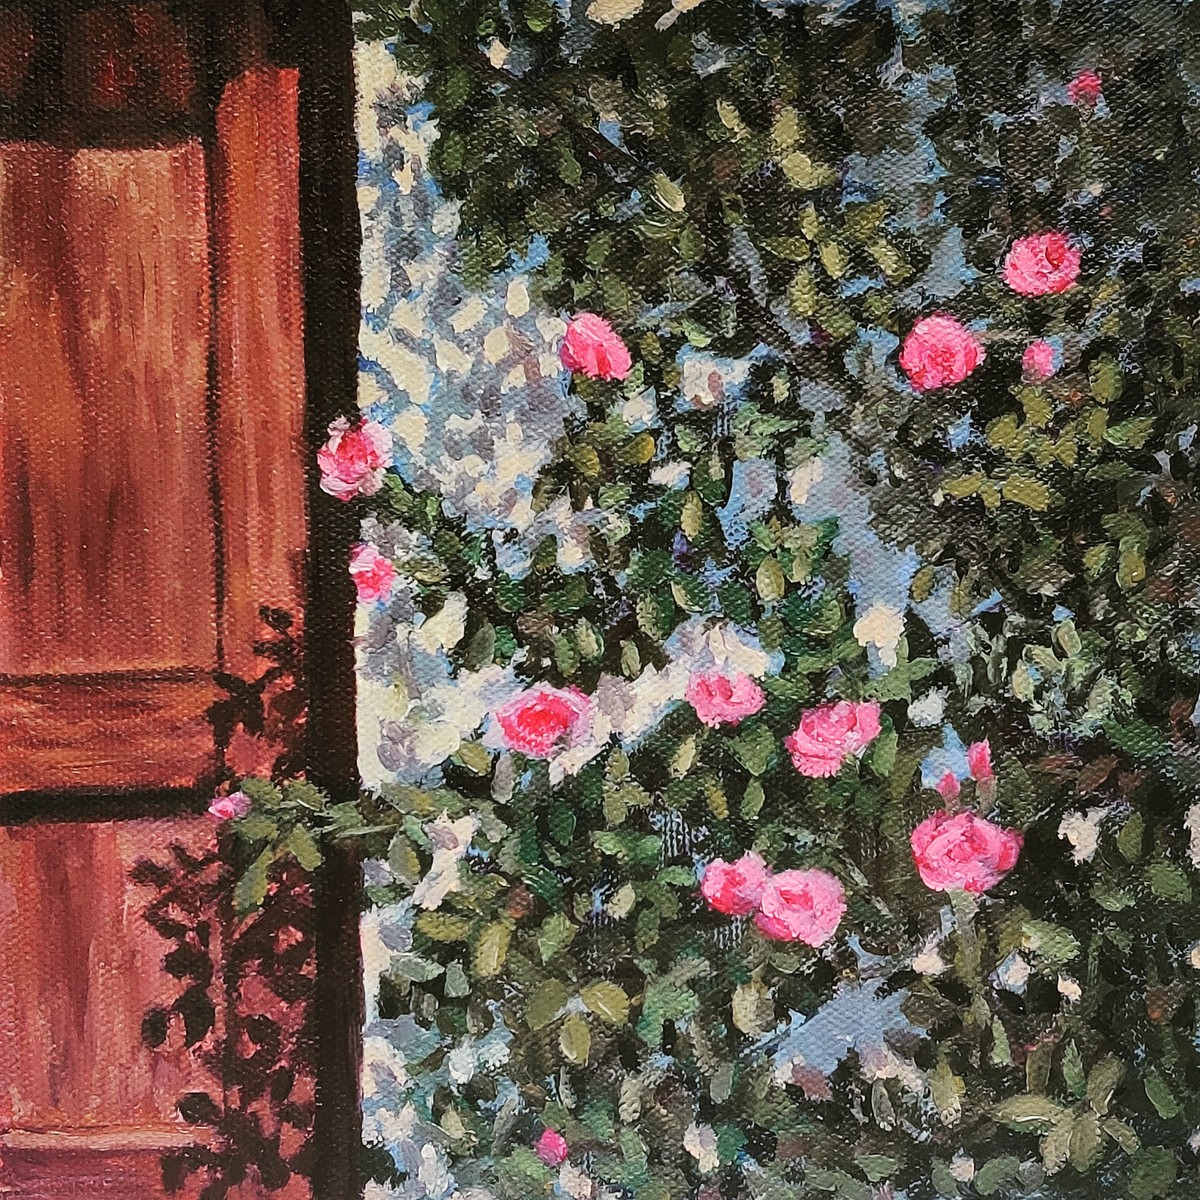 Vine on the wall by Ankita Chauhan, Conceptual Painting, Oil & Acrylic on Canvas, Birch color